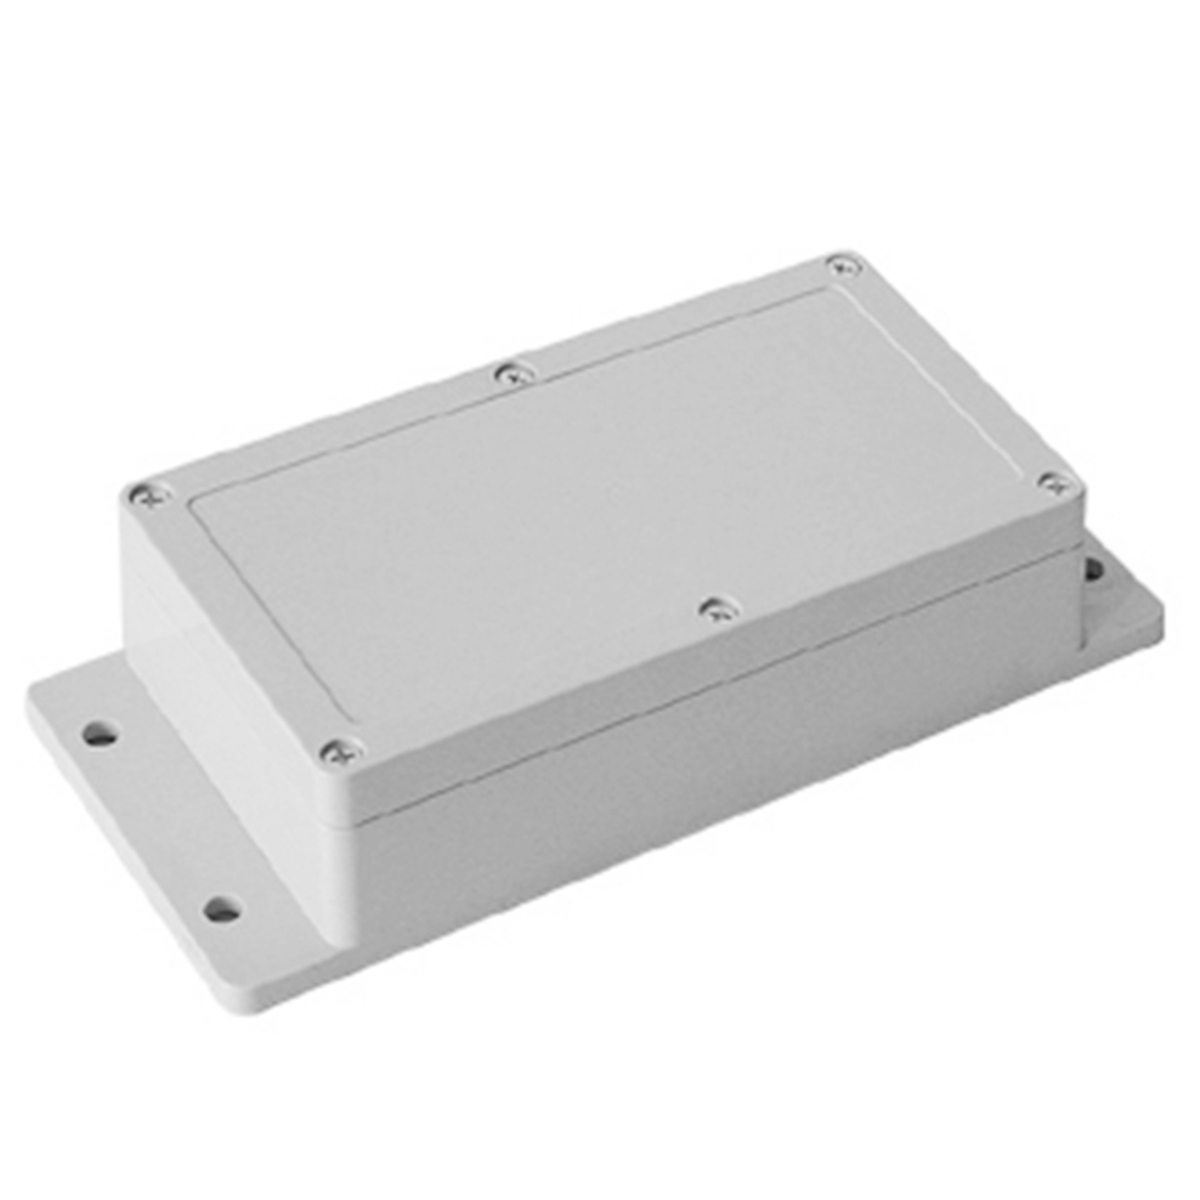 Plastic enclosure box for electrical apparatus dca heat gun